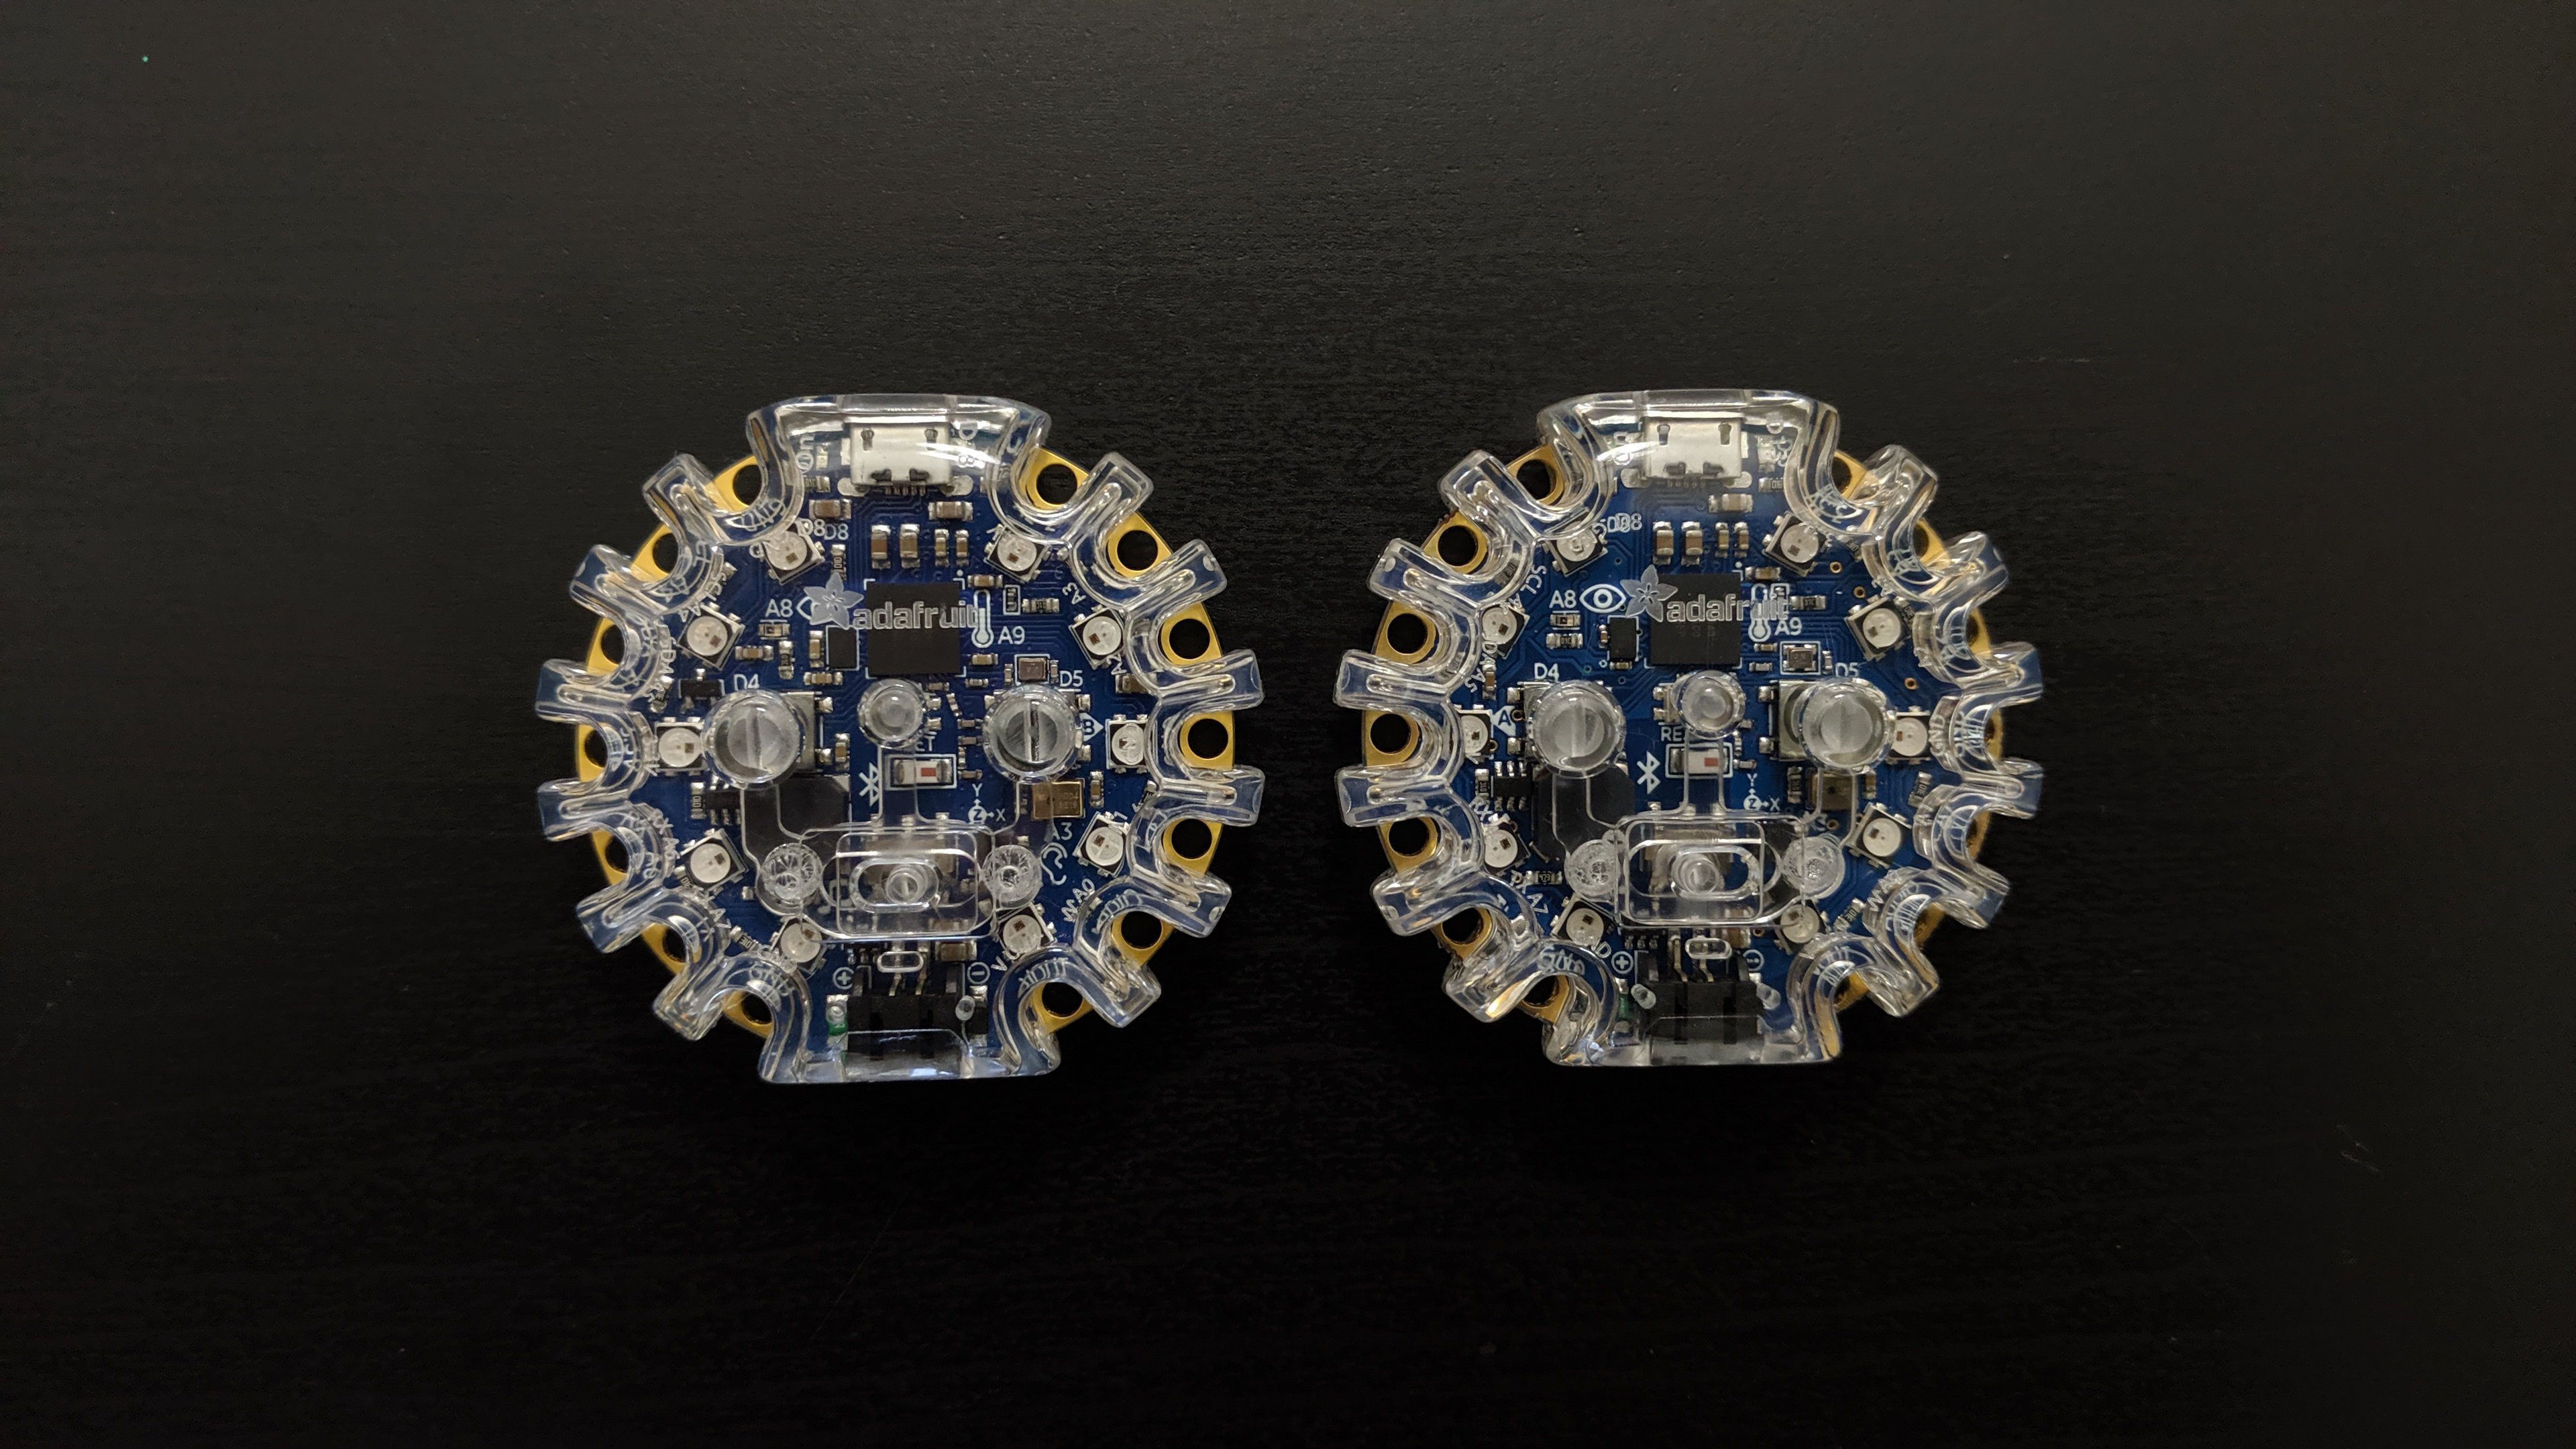 leds_CPB_NeoPIxel_Controller_CPBs_in_enclosures.jpg